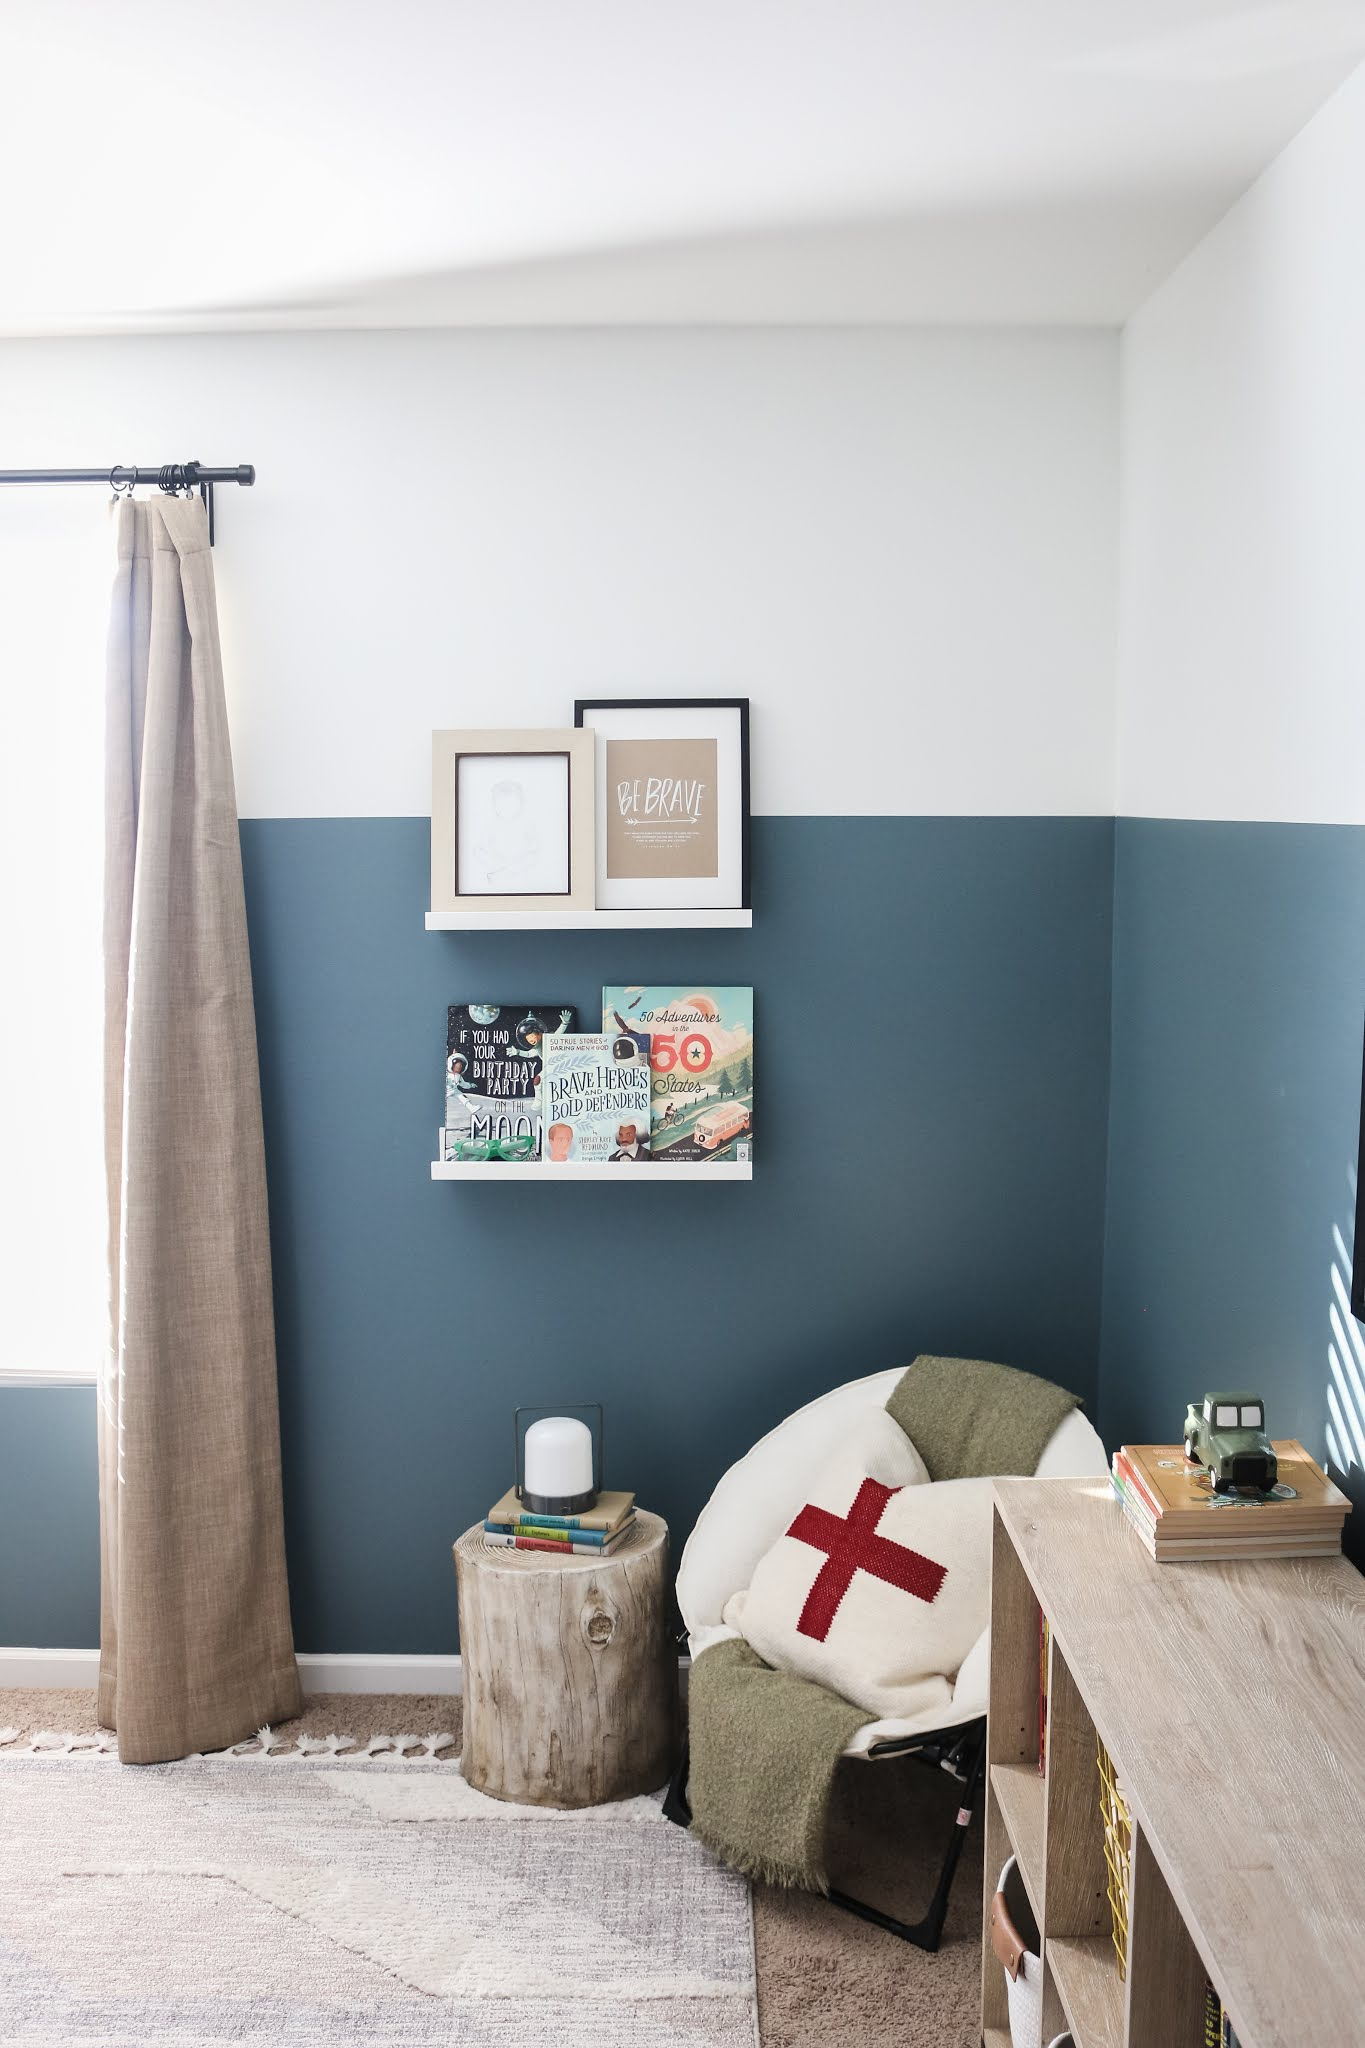 A classic modern boy's room with adventure elements, a subtle military vibe, and a modern take on red, white, and blue!